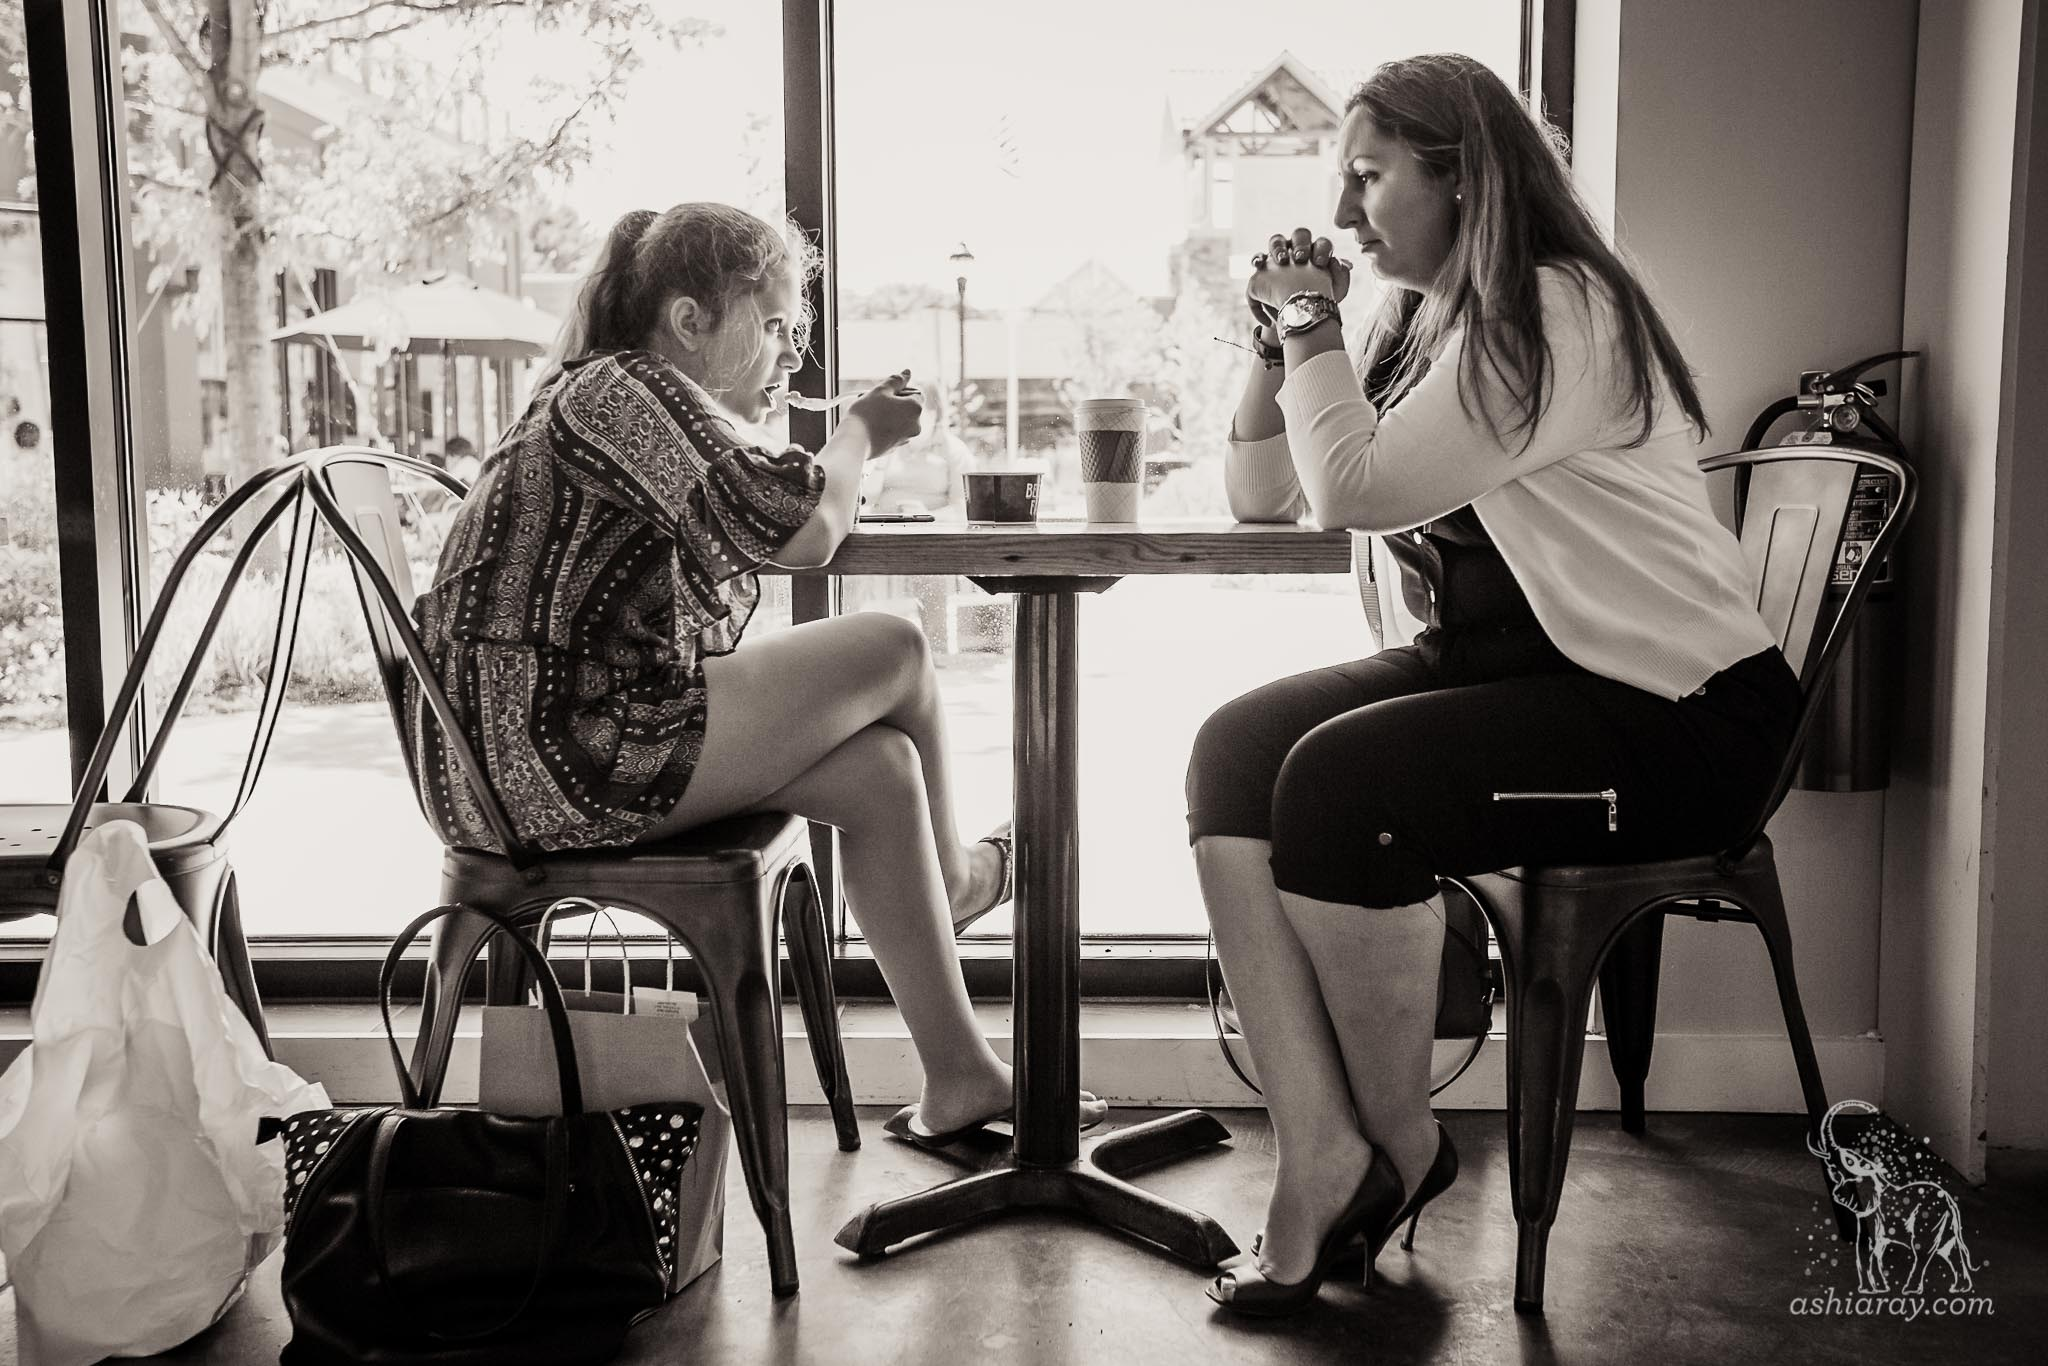 Mother and daughter eat ice cream and talk